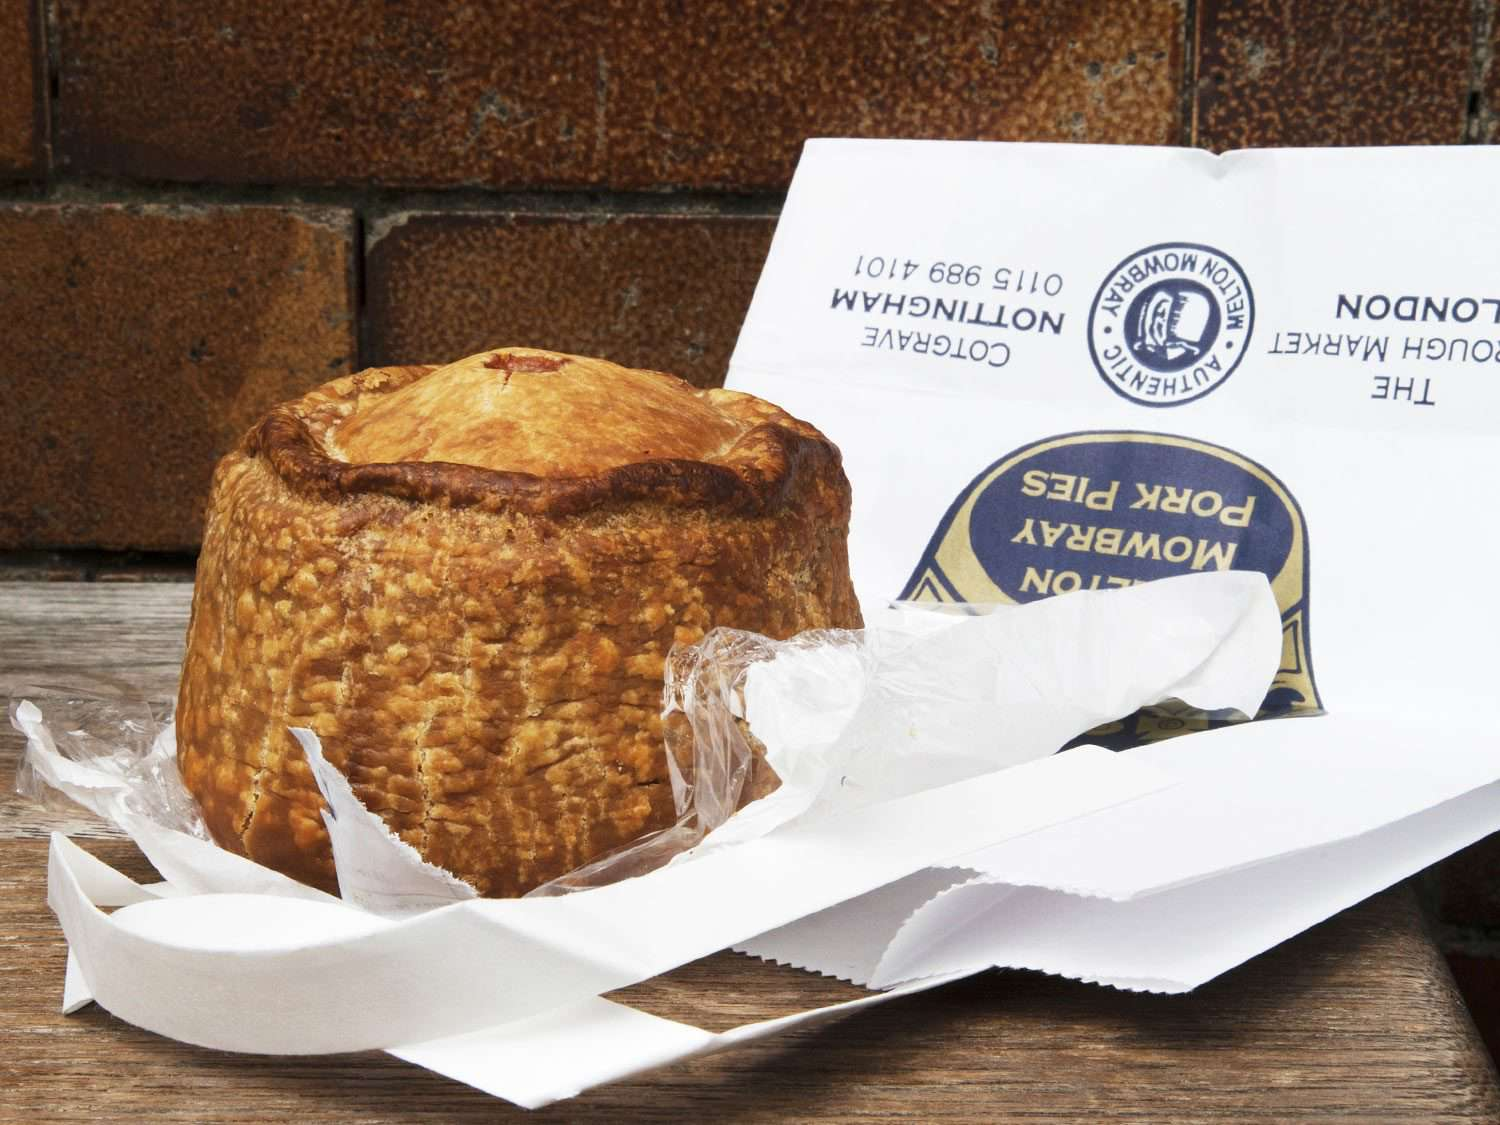 A whole Melton Mowbray pork pie, unwrapped, next to a paper shopping bag from Mrs. King's